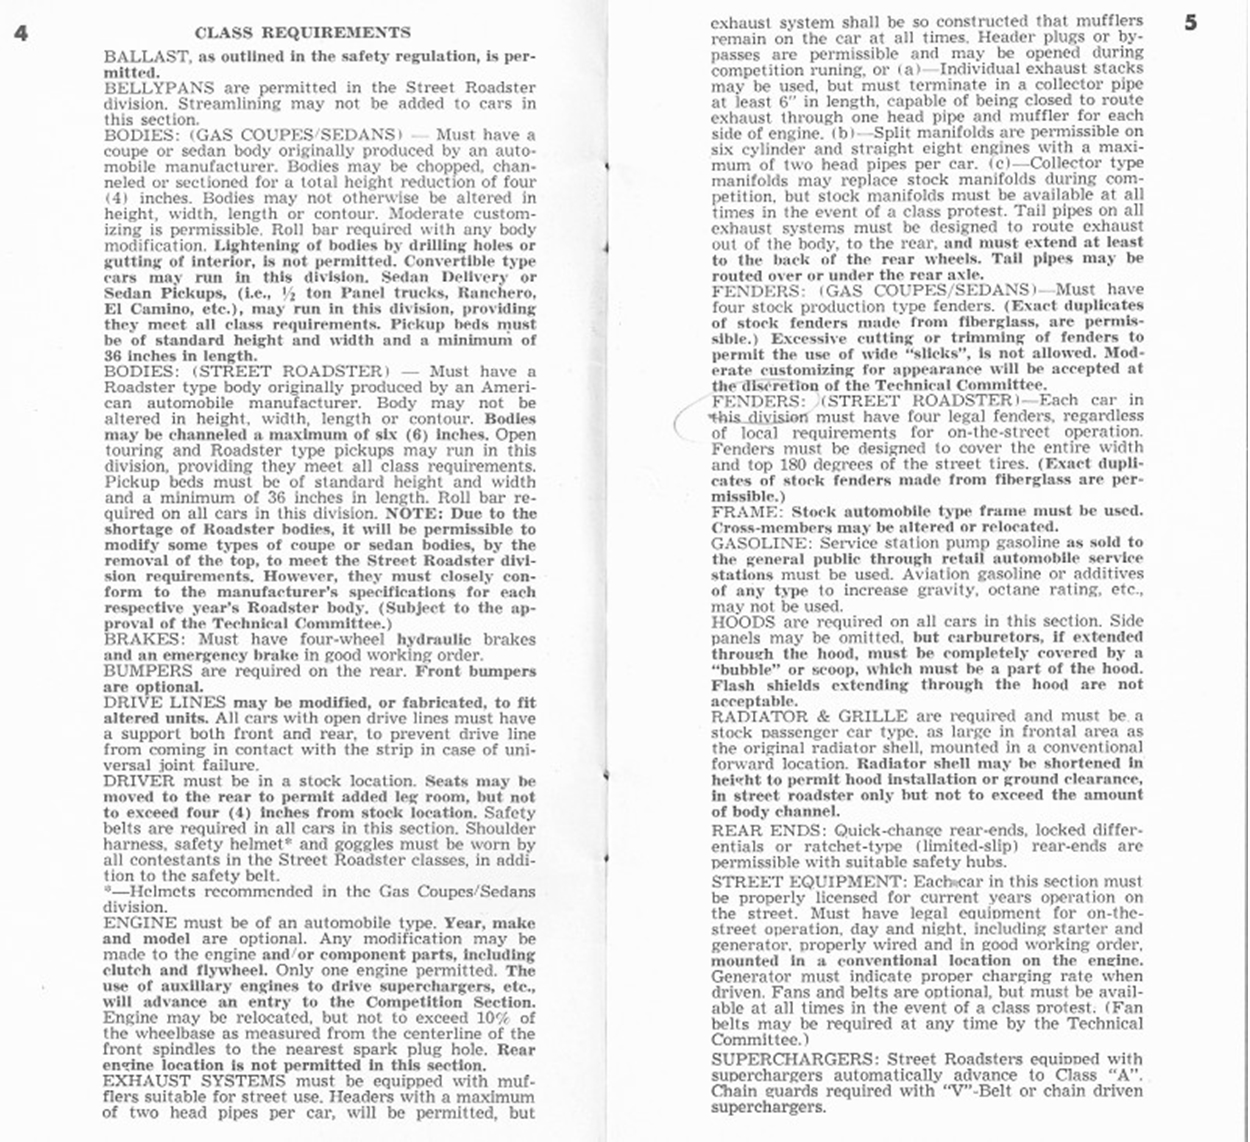 1960 Drag Rules-page04 - Copy